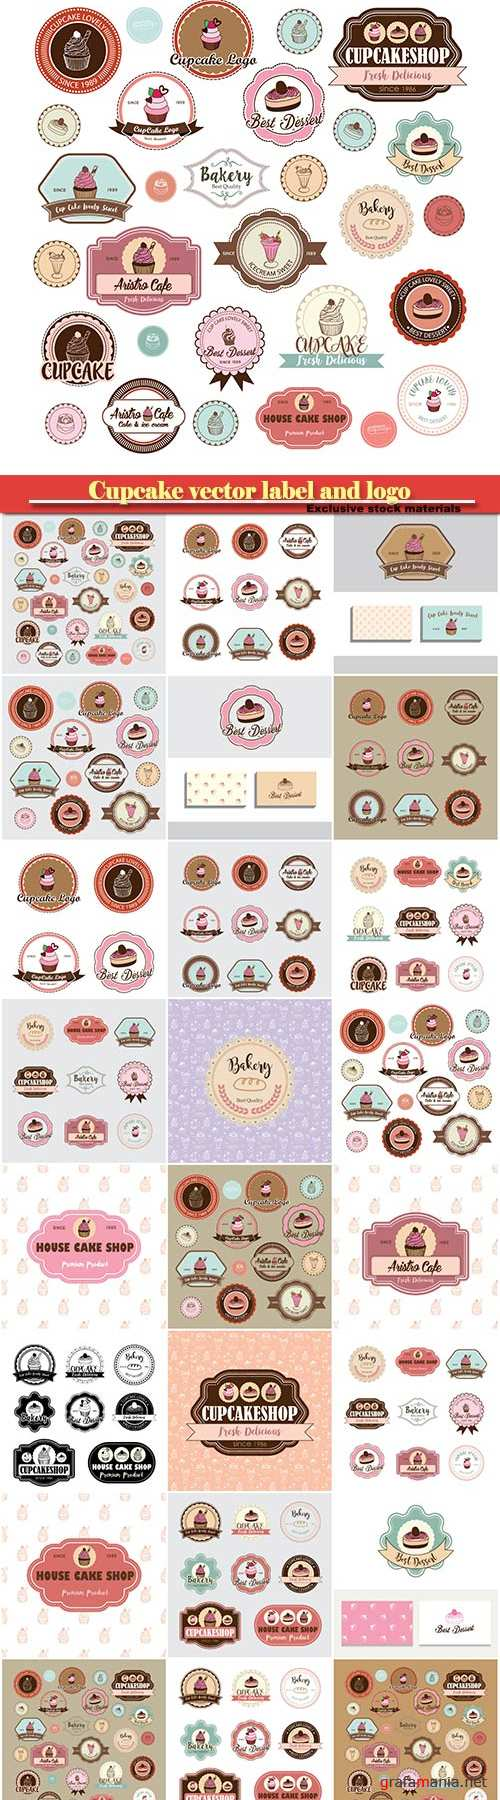 Cupcake vector label and logo illustration